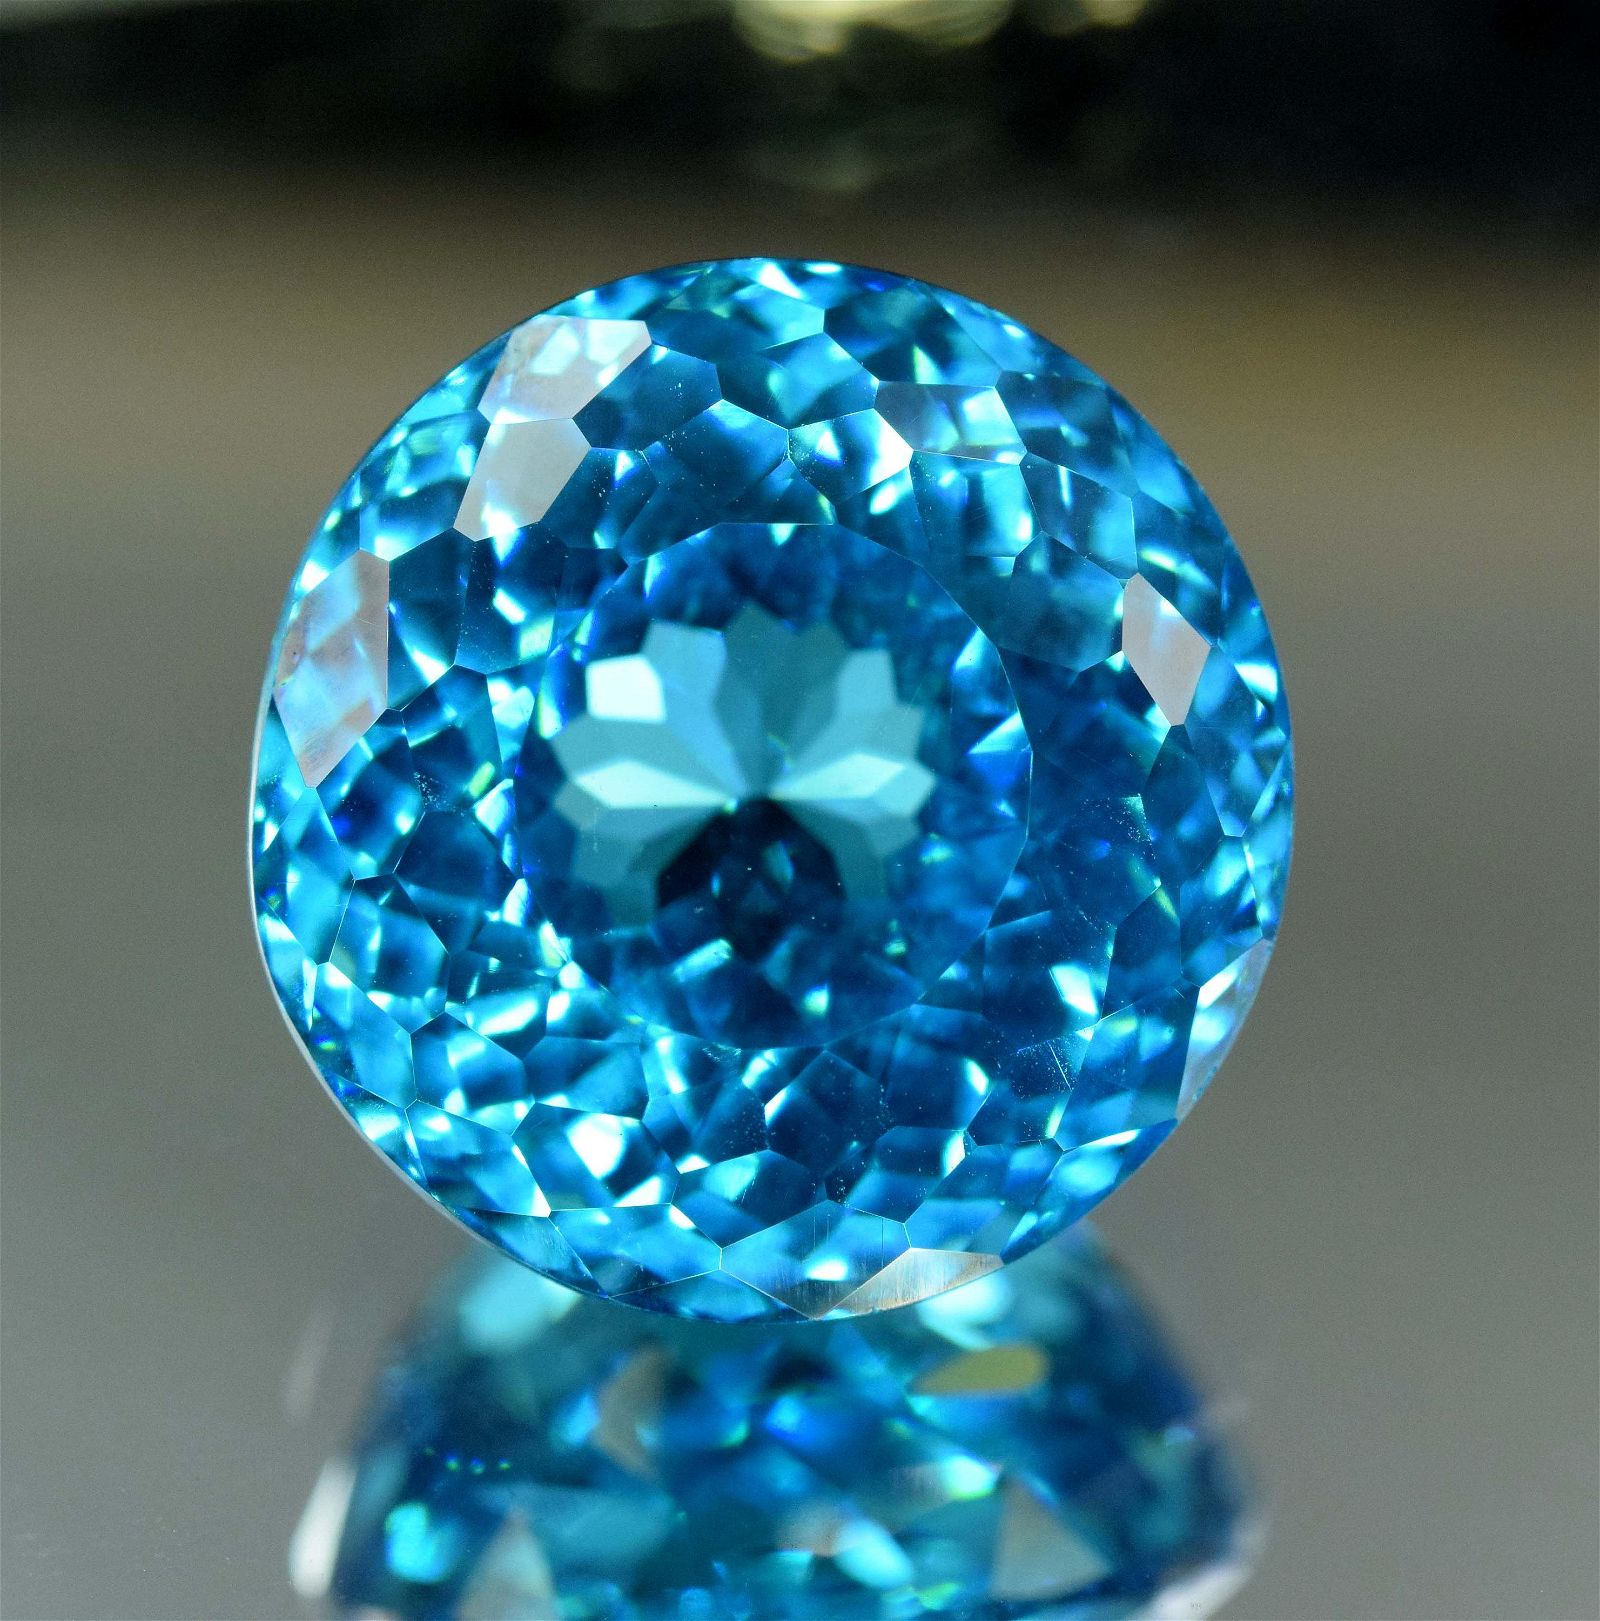 48.90 cts Round Shape Stunning Electric Blue Topaz